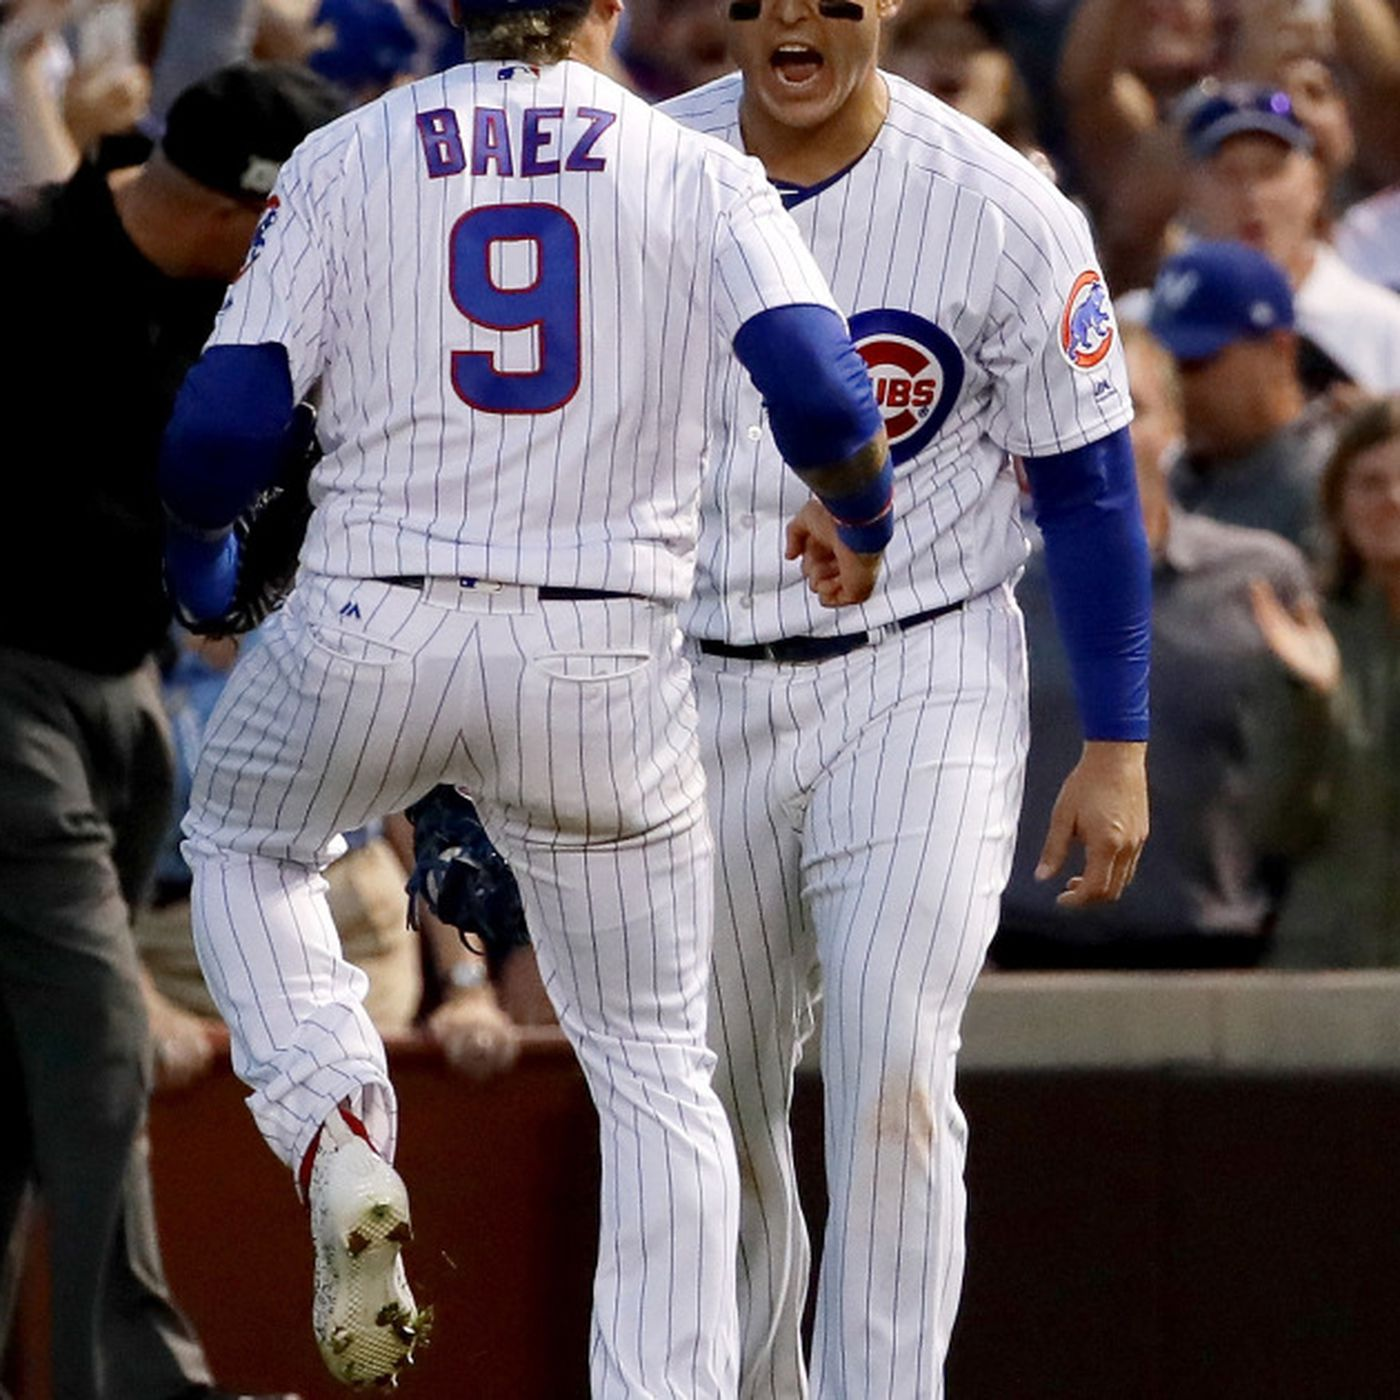 3121e189304 Baez in Cubs lineup for Game 4  Hendricks to start Game 5 if necessary